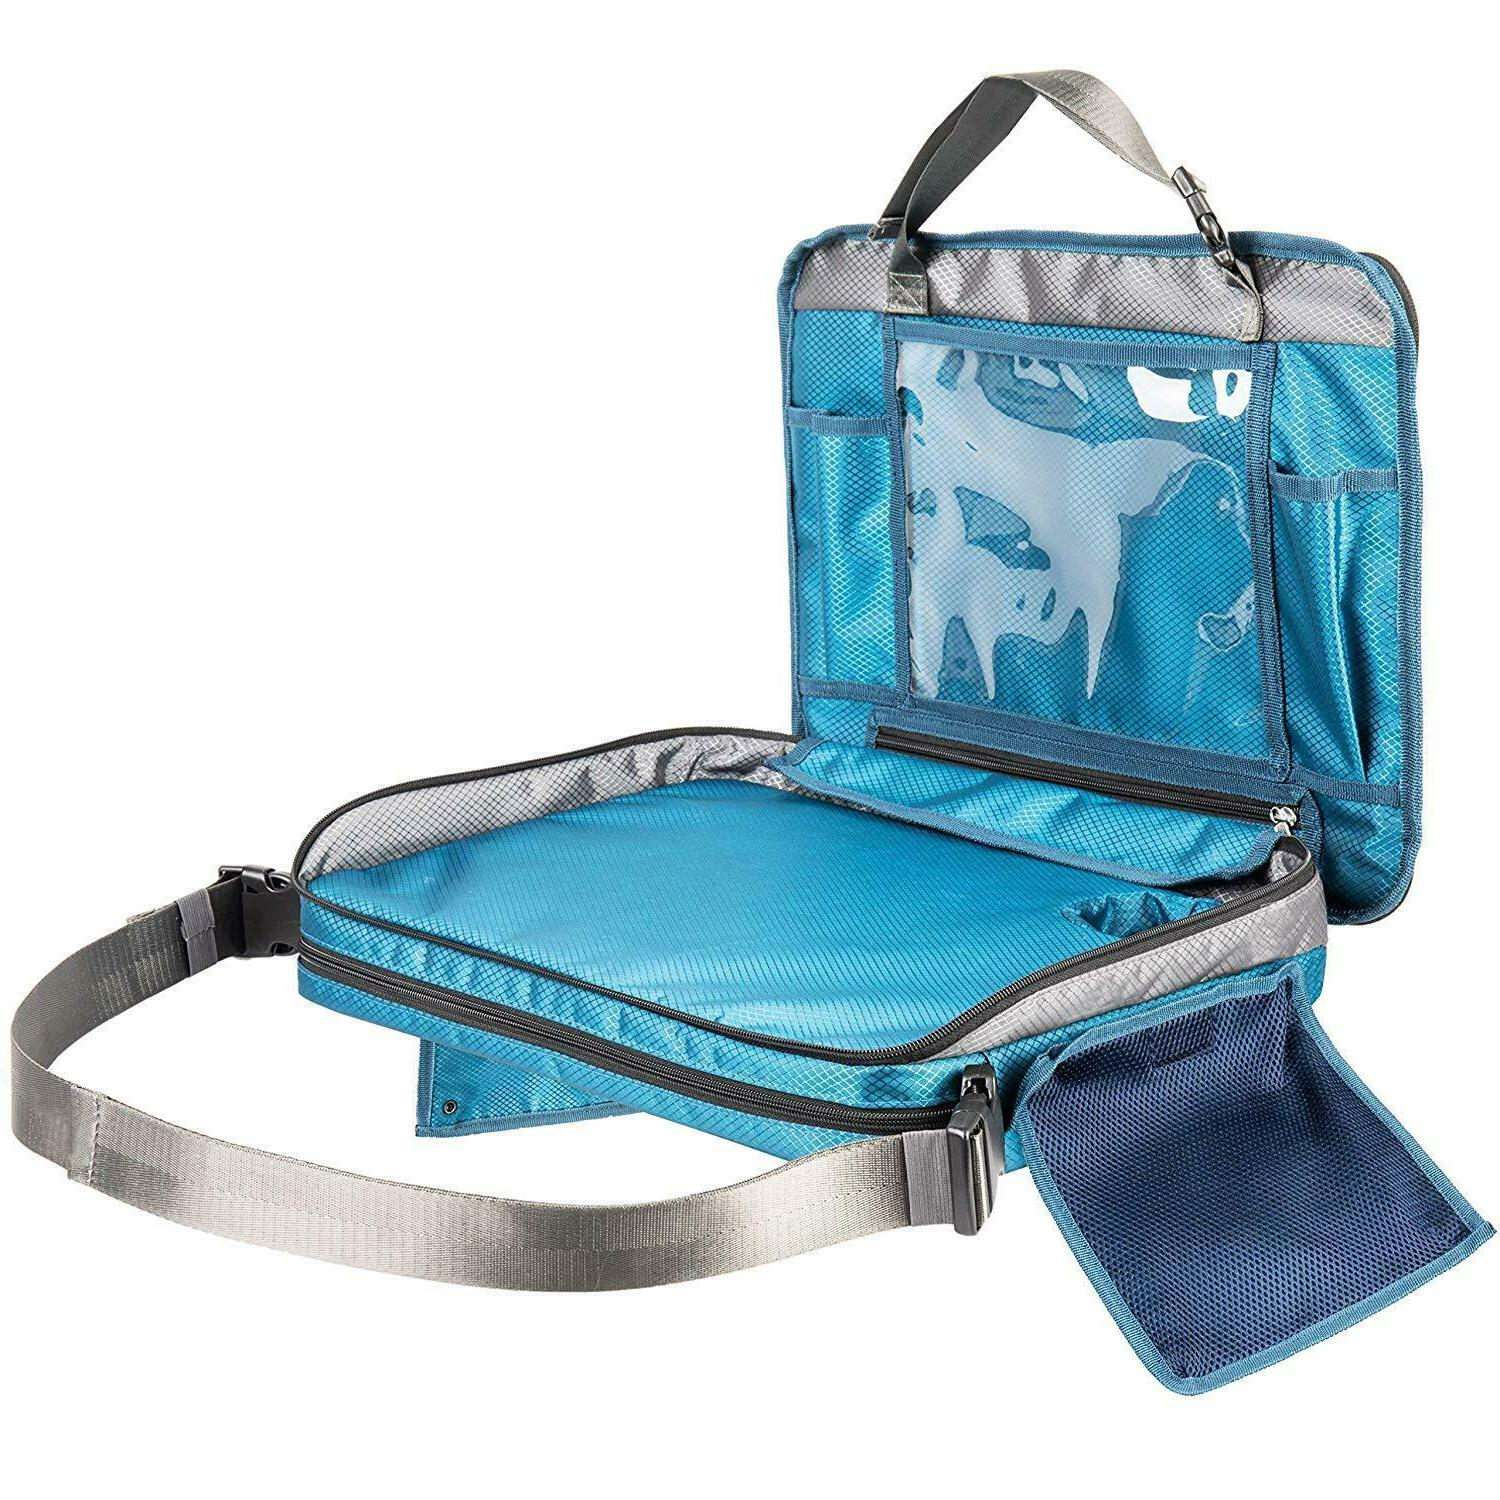 kids travel tray for car seat detachable